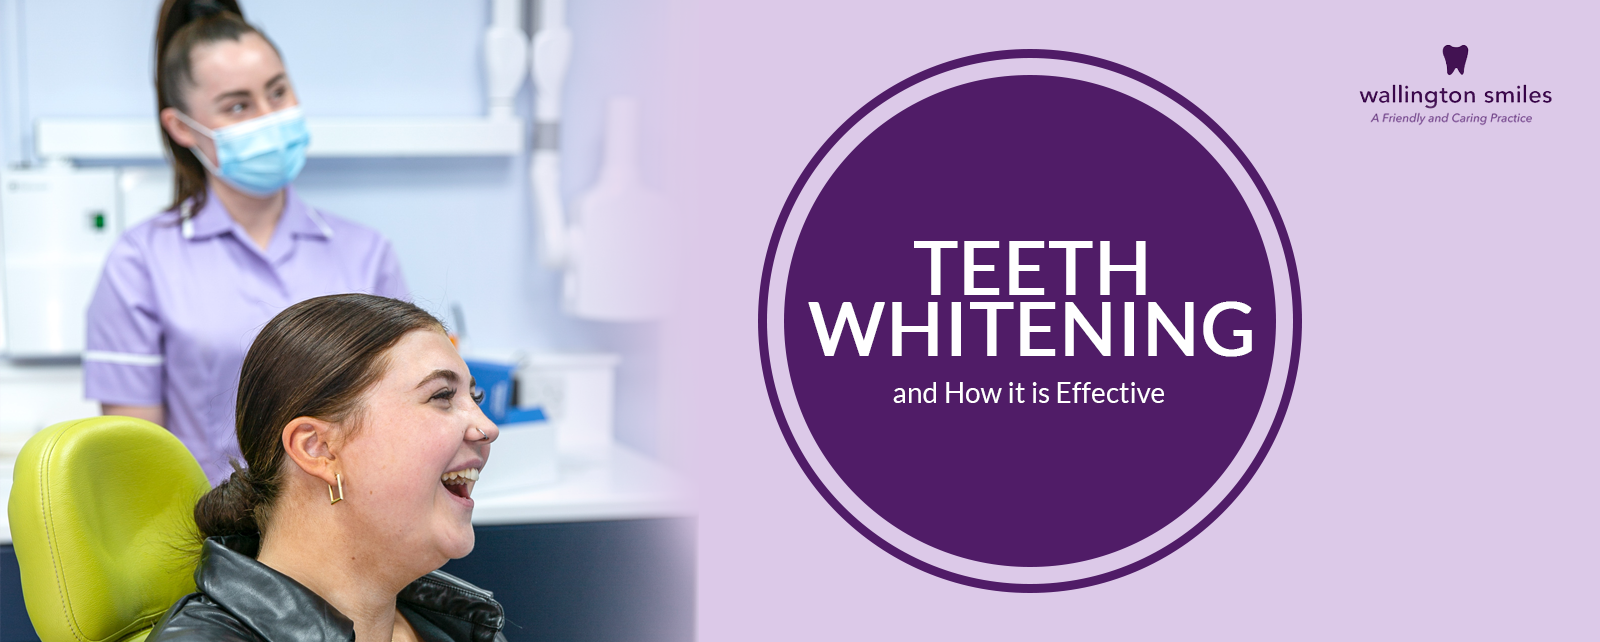 Teeth Whitening and How it is Effective